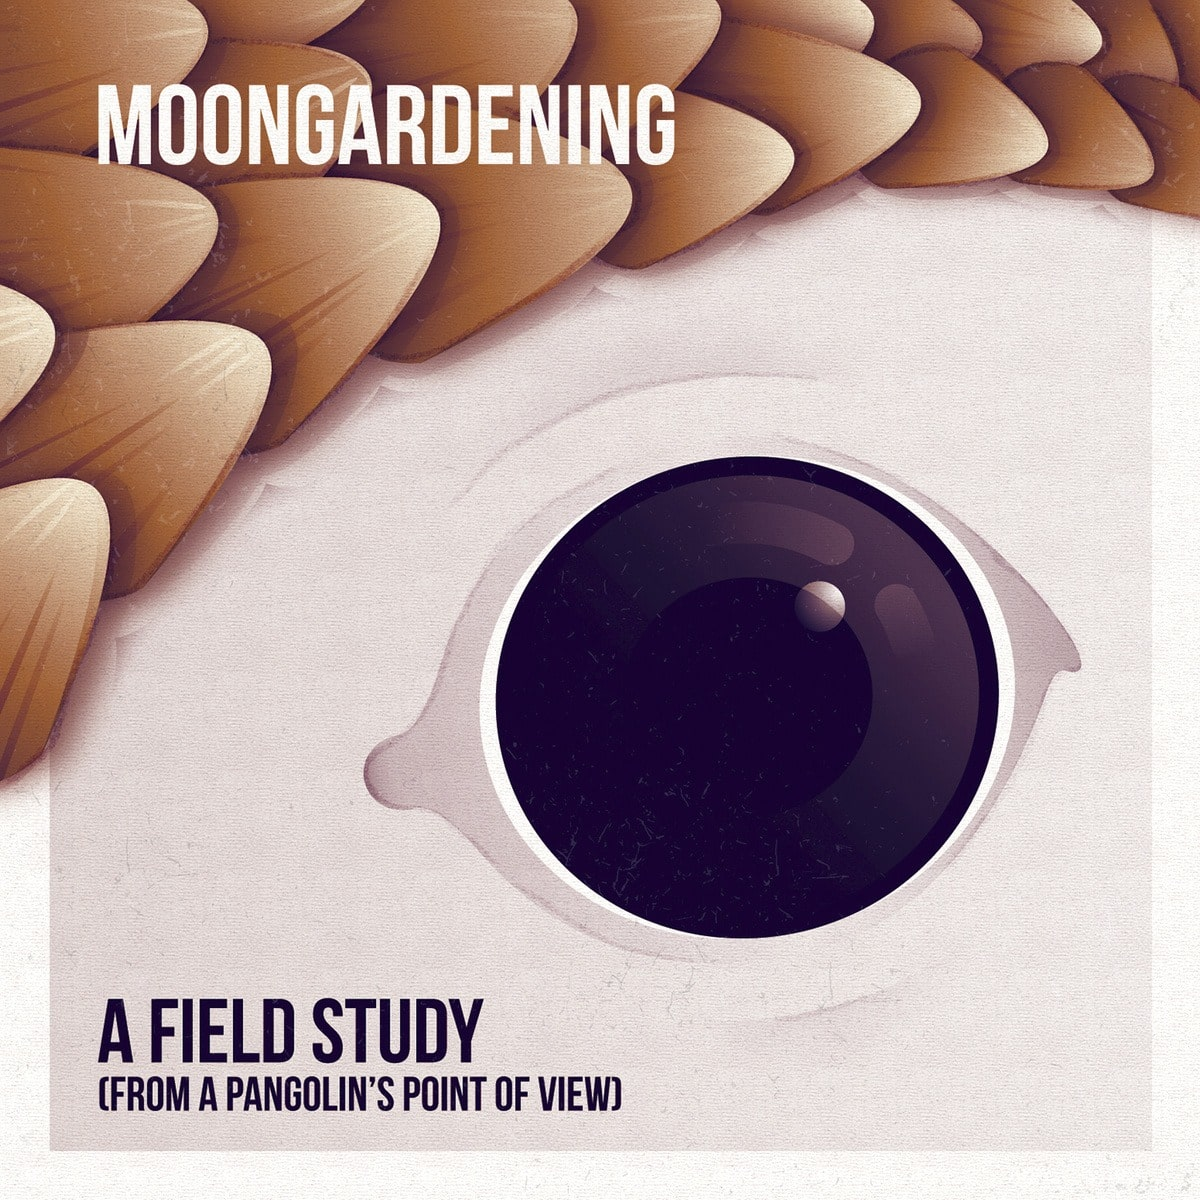 MOONGARDENING – A field study, 2014